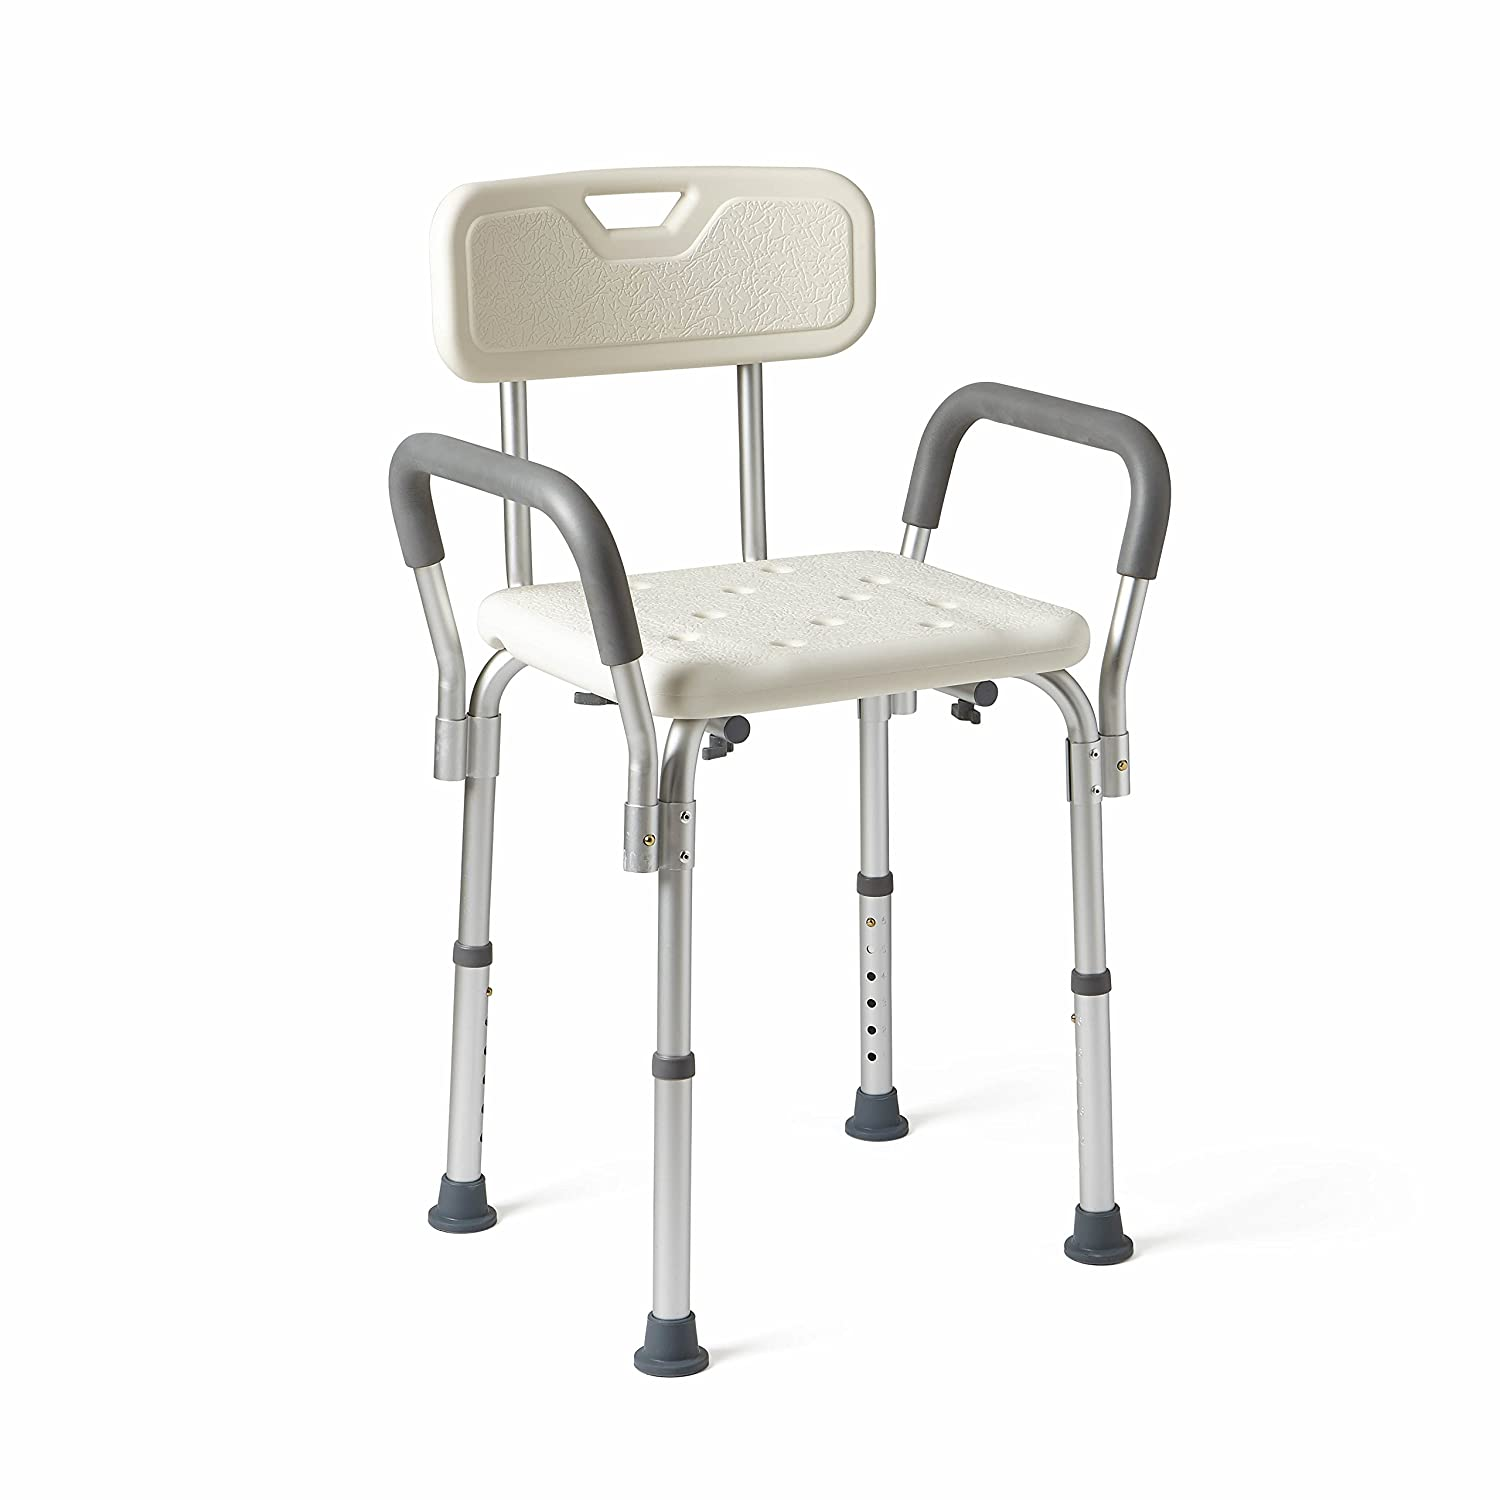 Medline Shower Chair Bath Seat with Padded Armrests and Back, Great for Bathtubs, Supports up to 350 lbs 71ByP0KSKoL